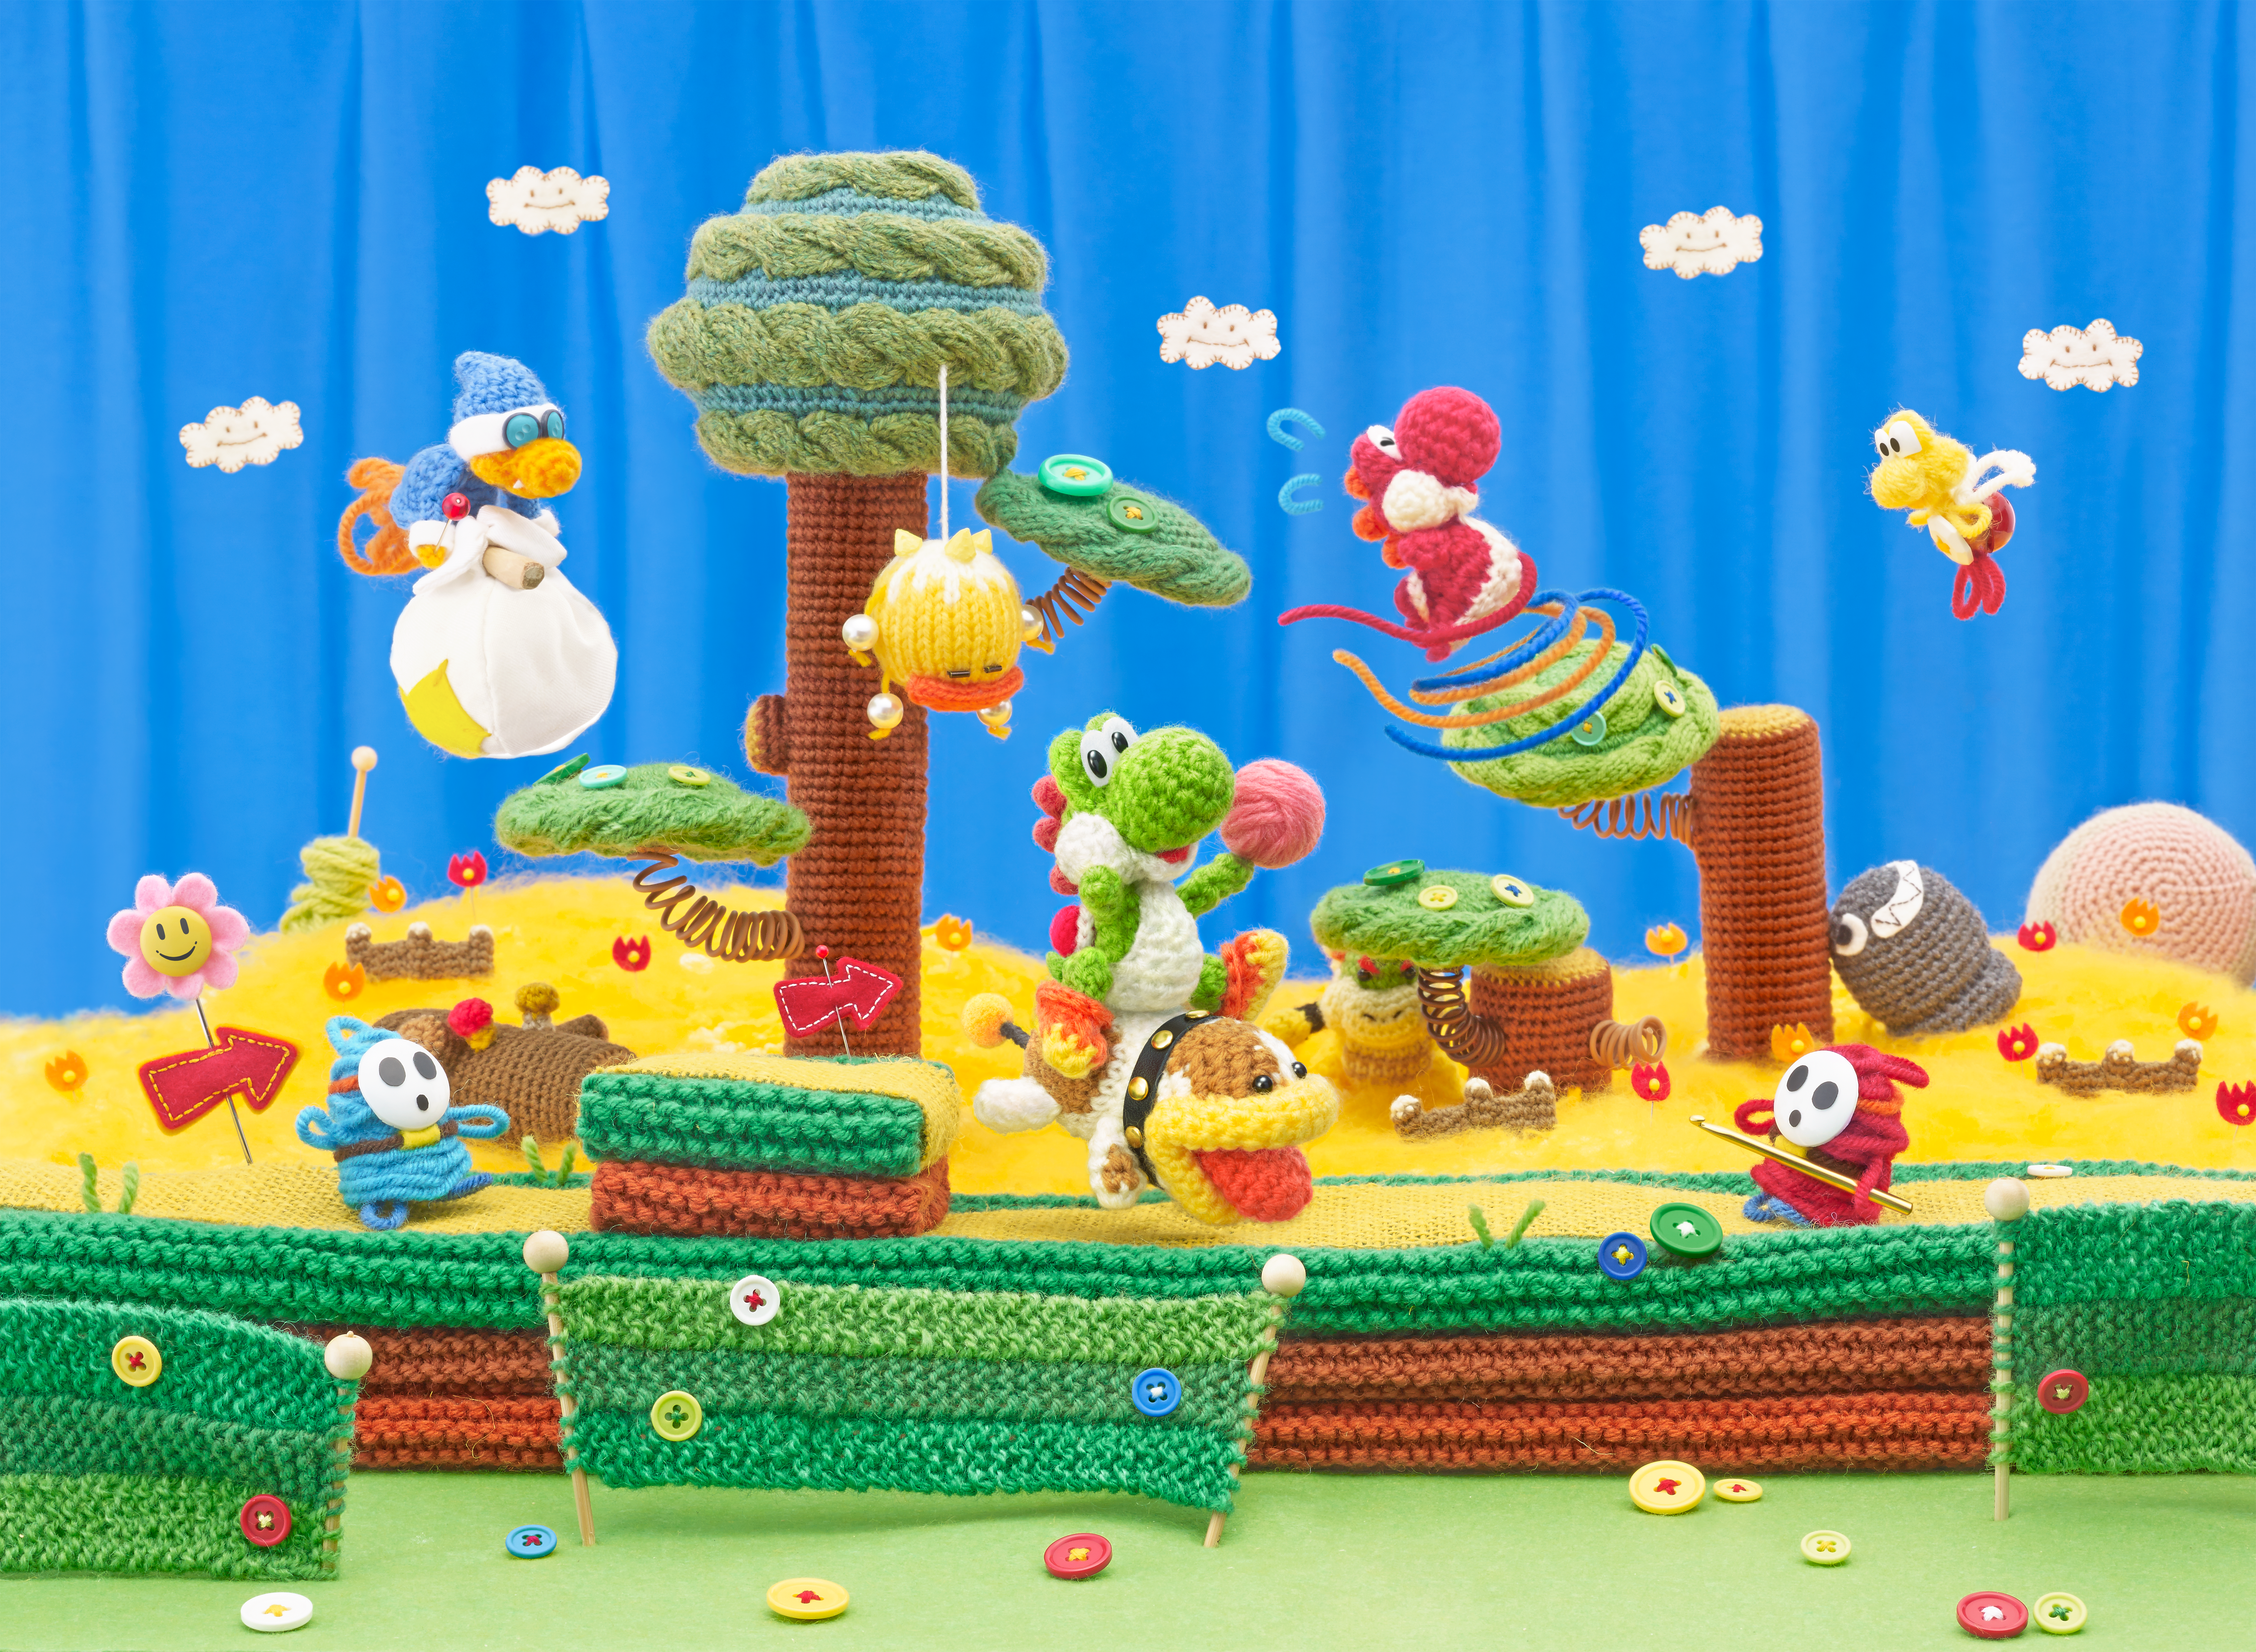 Poochy & Yoshi's Woolly World Runs At 30fps On Nintendo 3DS